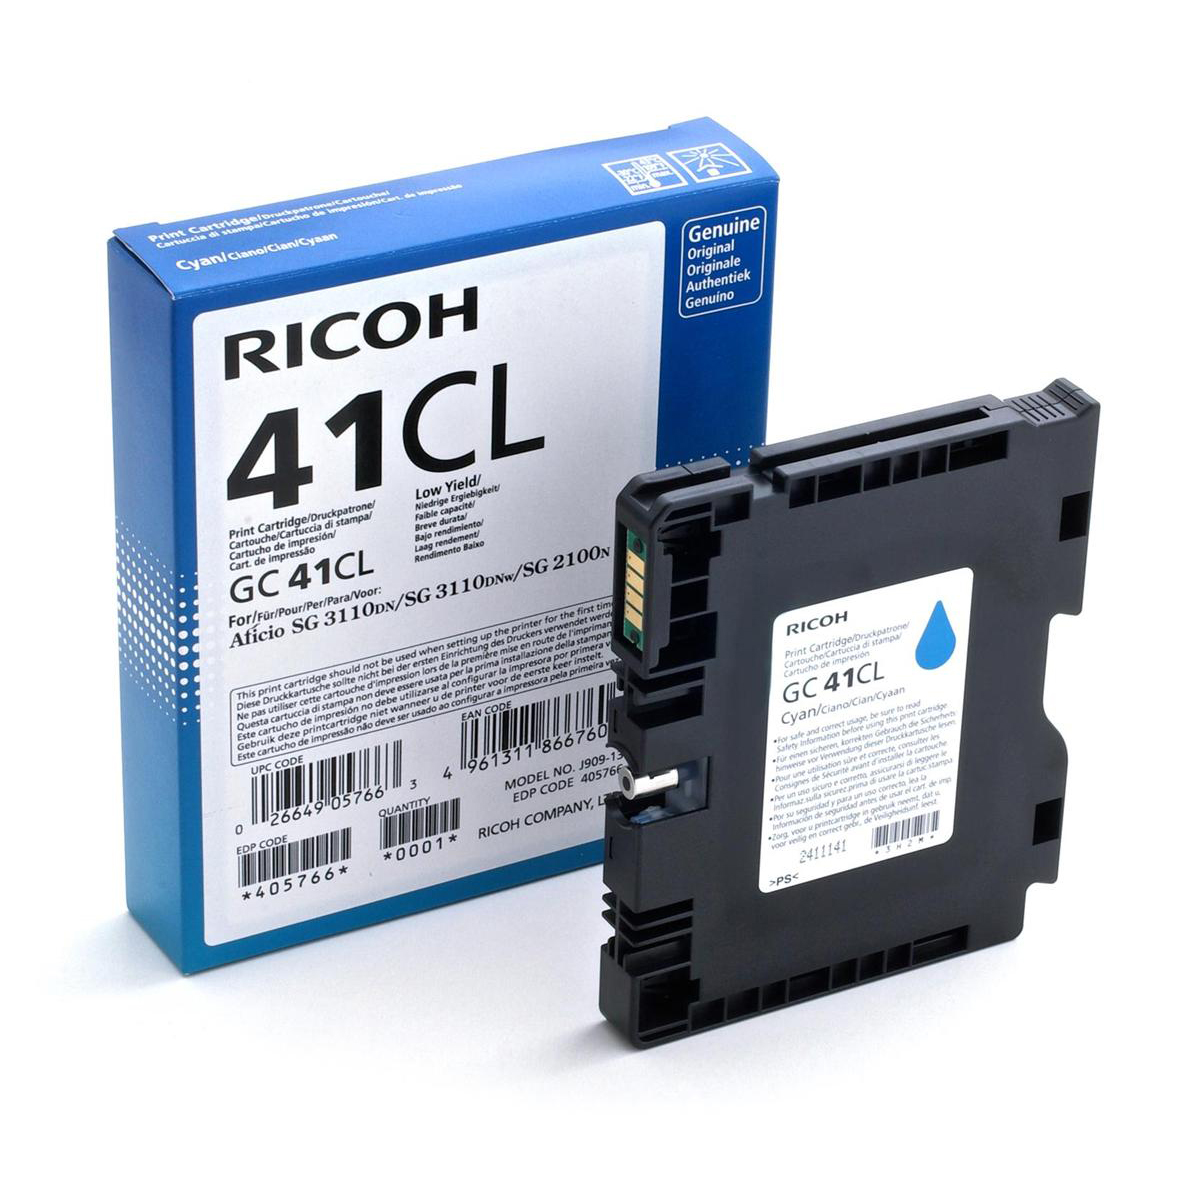 Ricoh Gel Inkjet Cartridge Page Life 600pp Cyan Ref GC-41CL 405766